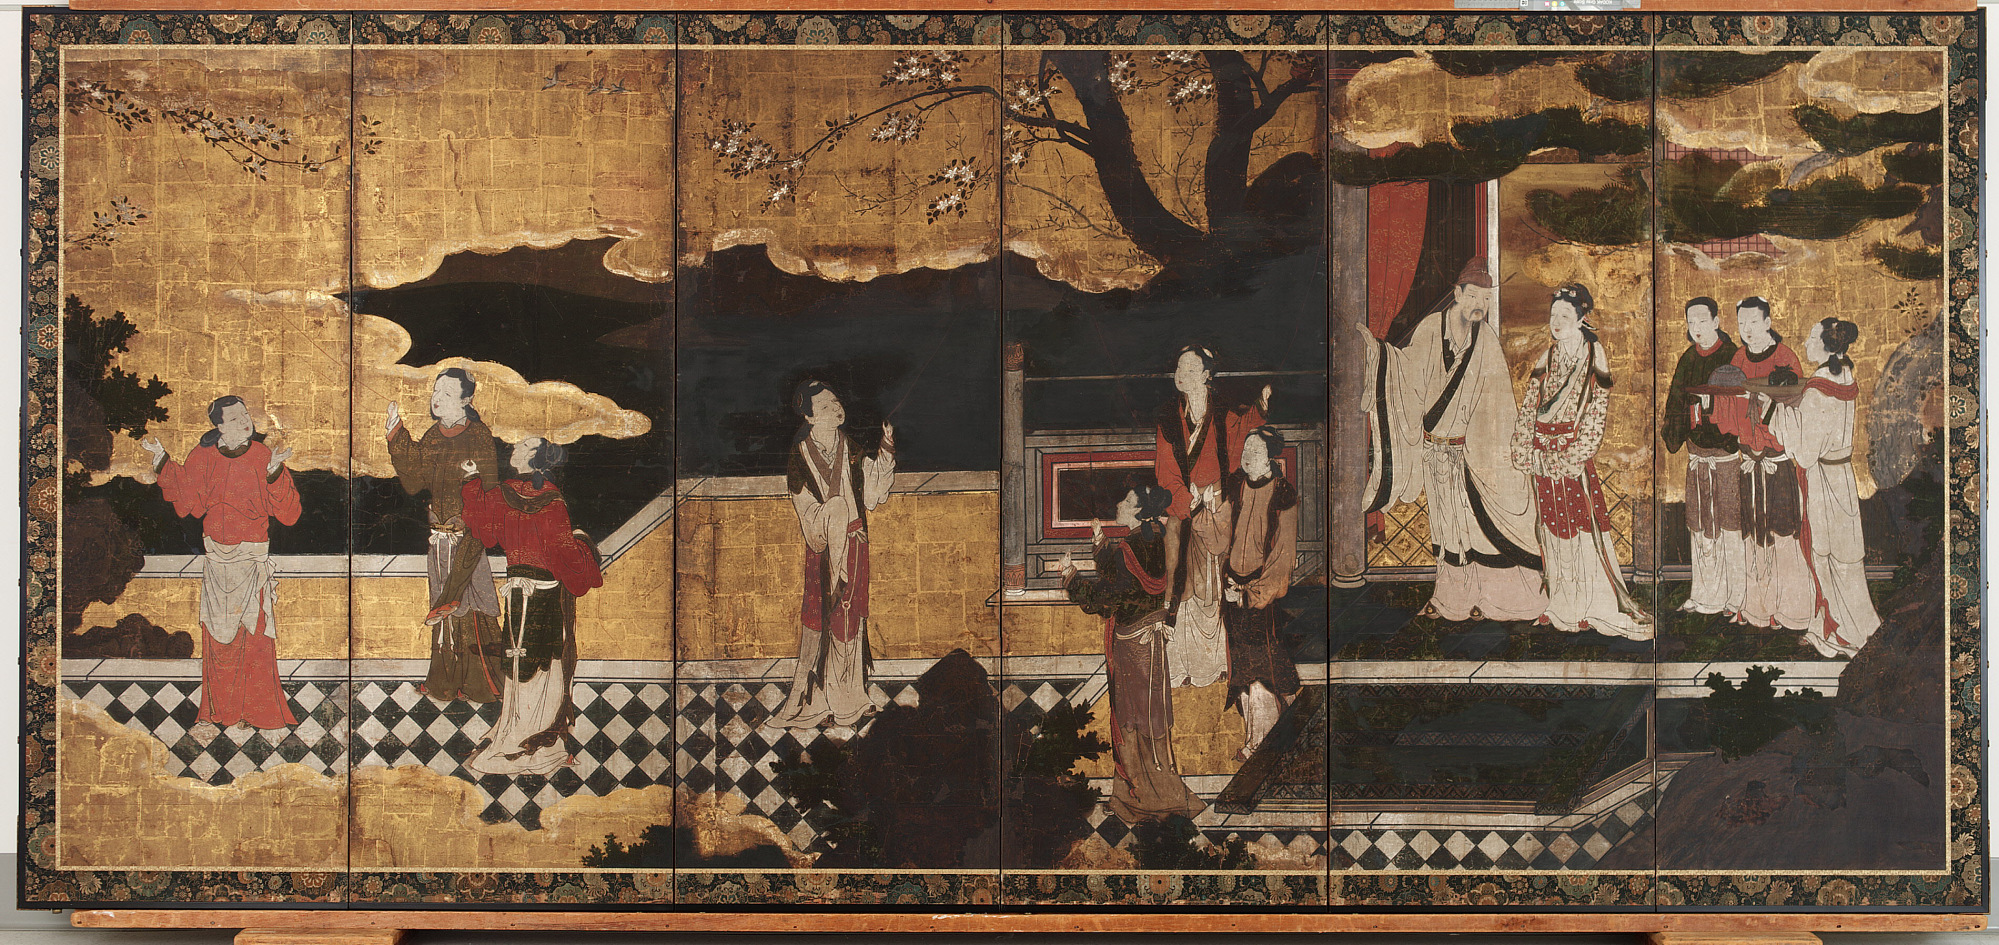 The Chinese Emperor Minghuang and his concubine Yang Guifei, with attendants on a terrace